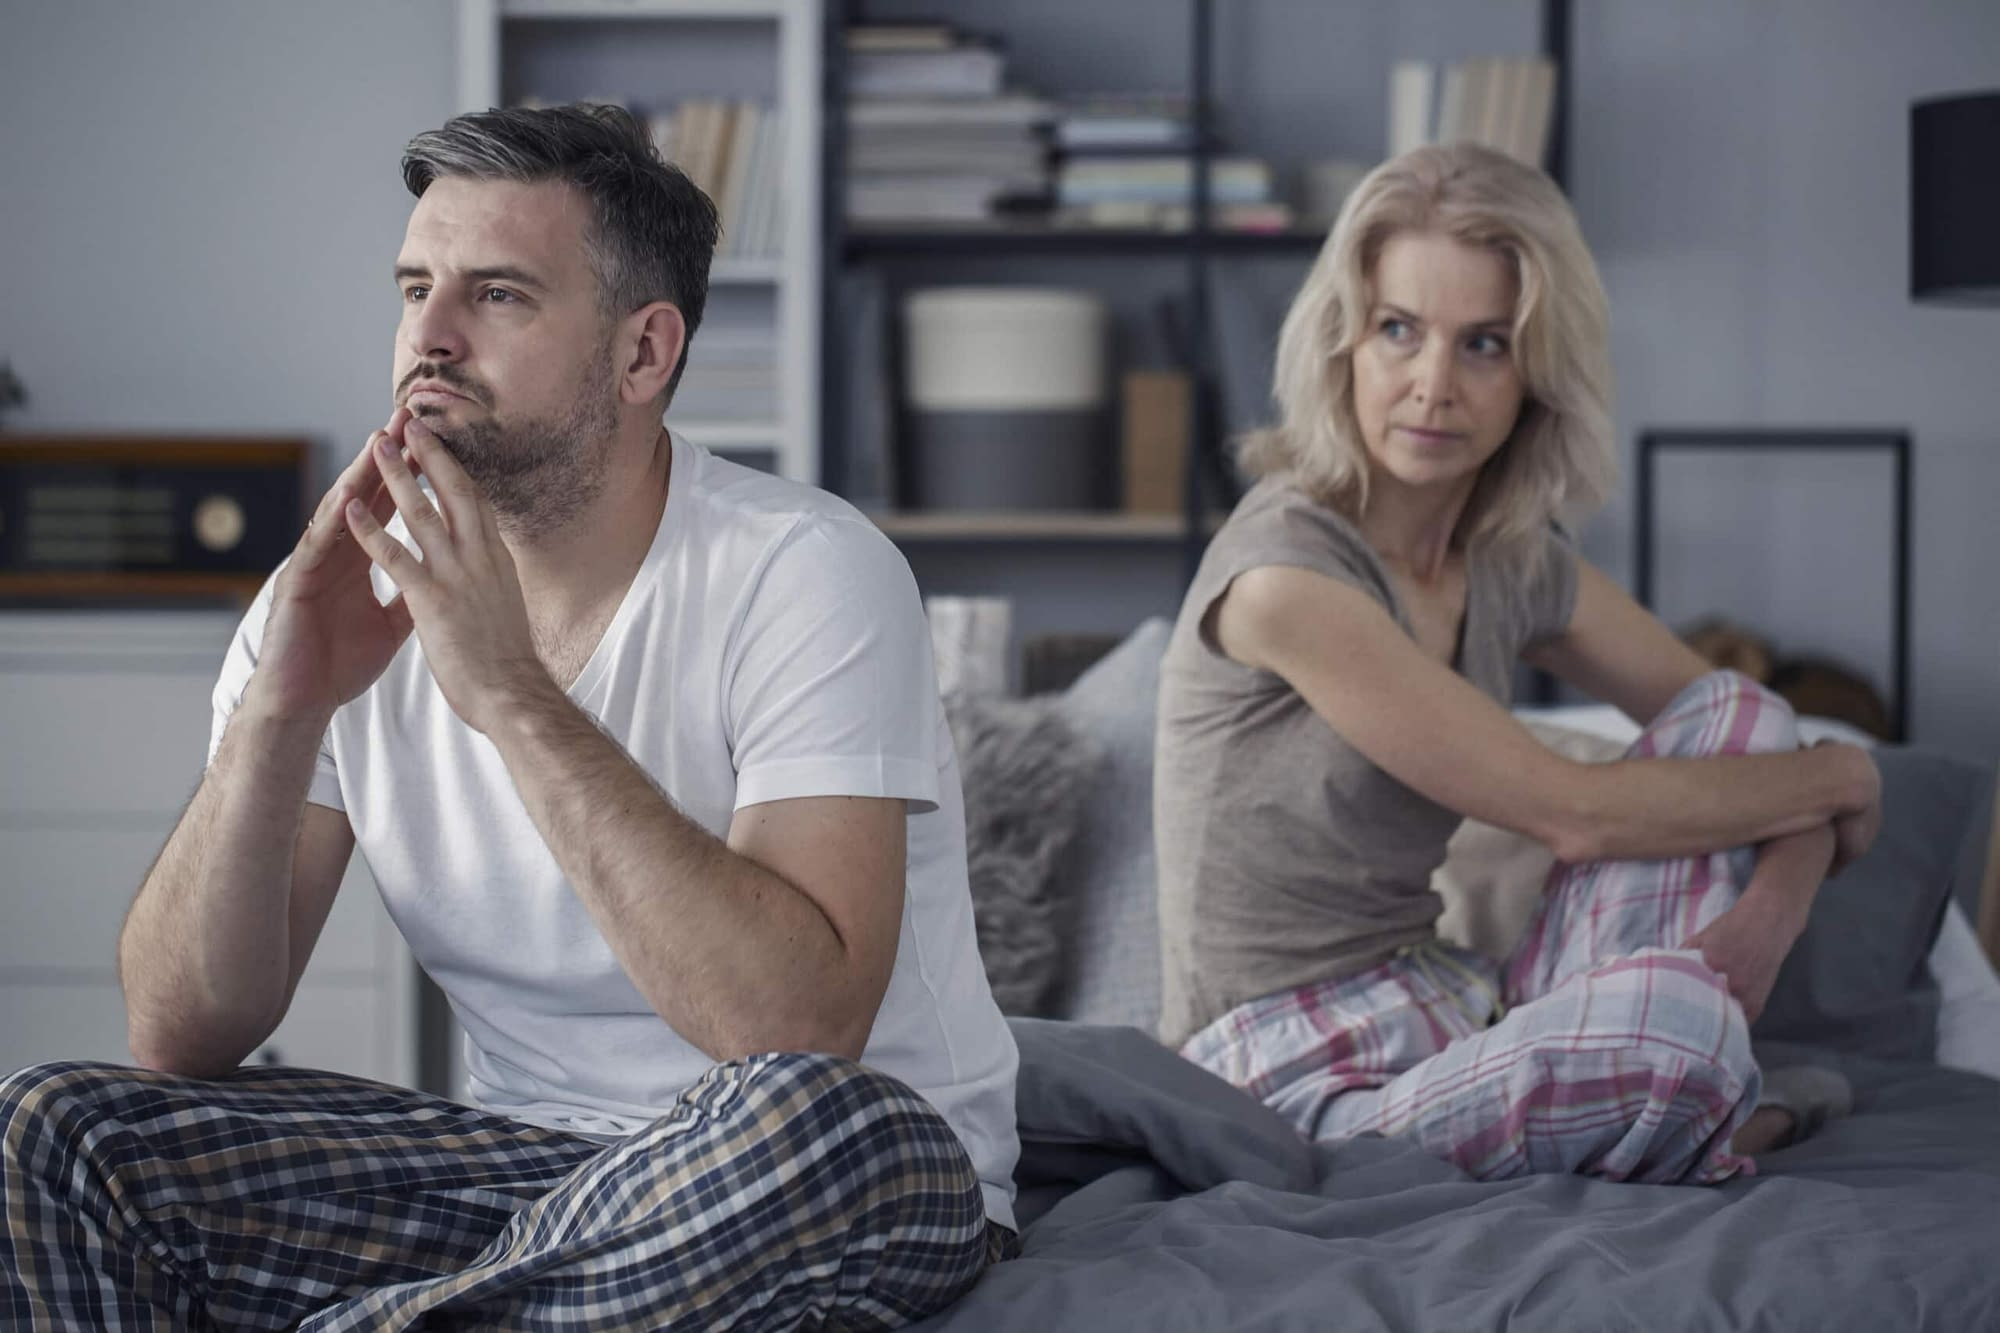 wife doesn't want sex with me